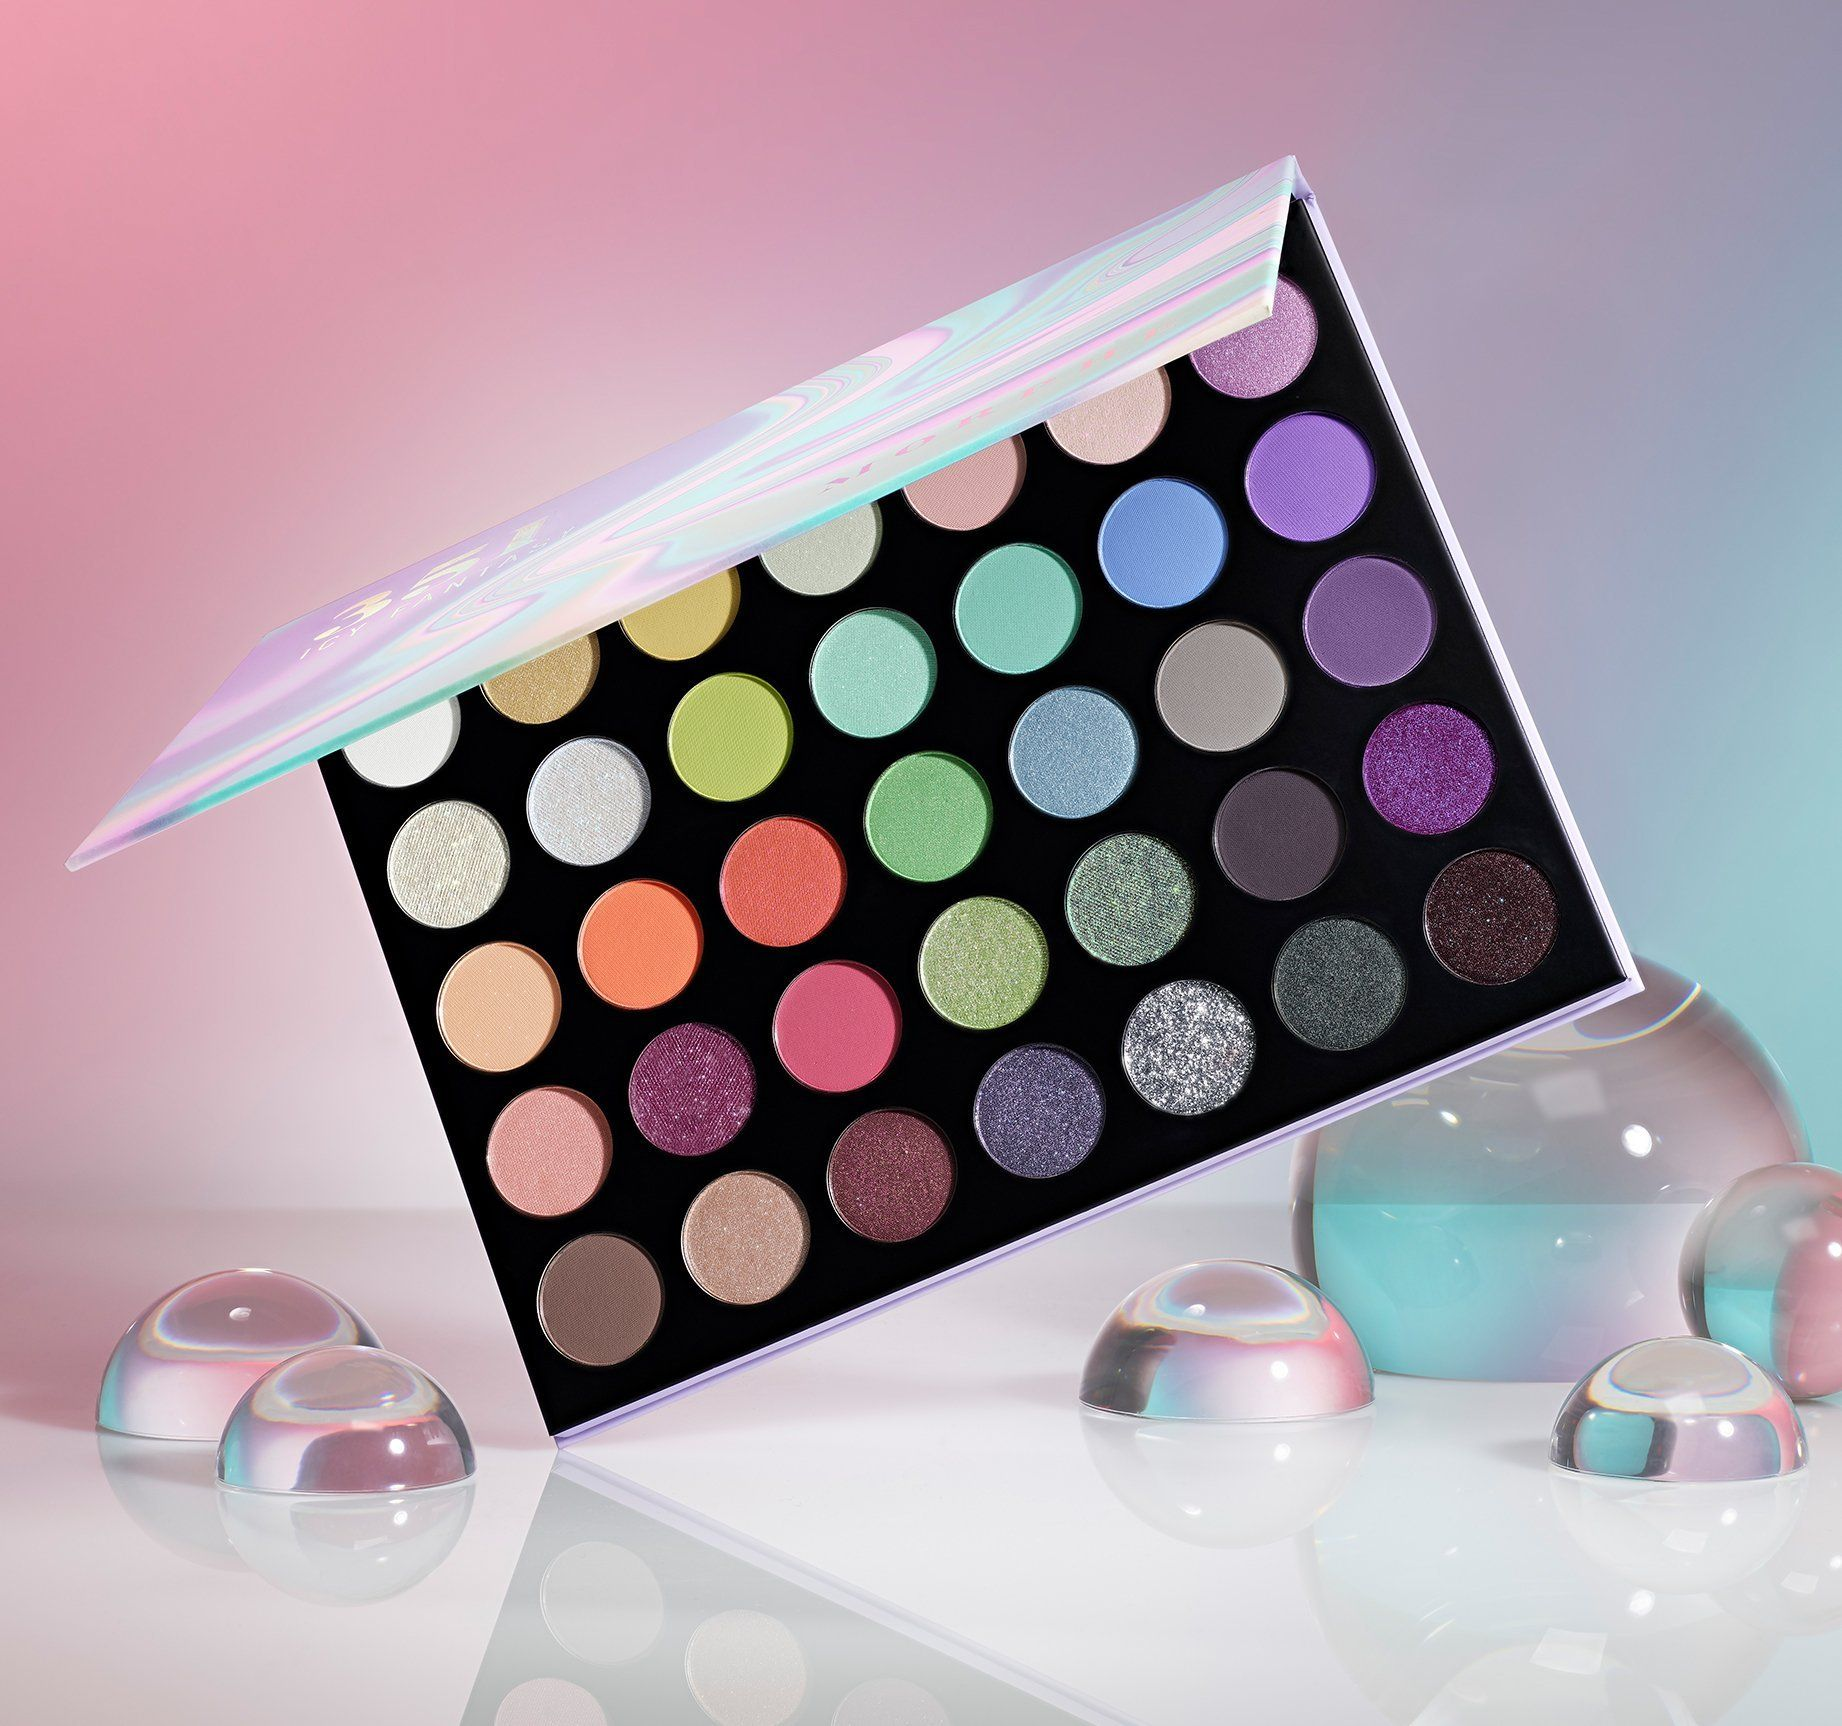 Morphe 35I Icy Fantasy Artistry Palette, Multicolor in